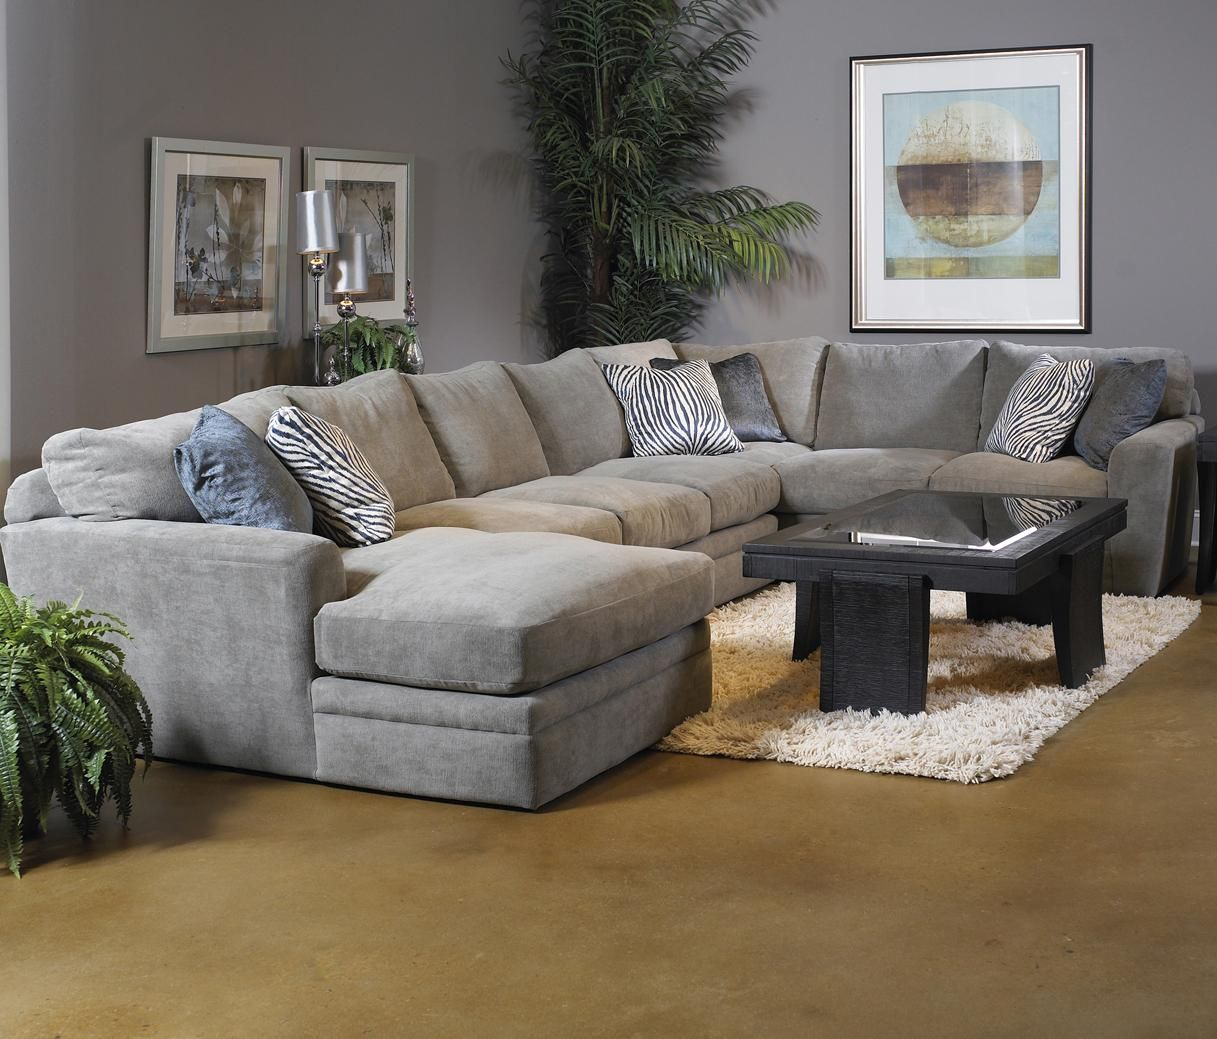 Palms 3 Piece Sofa Sectional By Fairmont Designs At Reeds